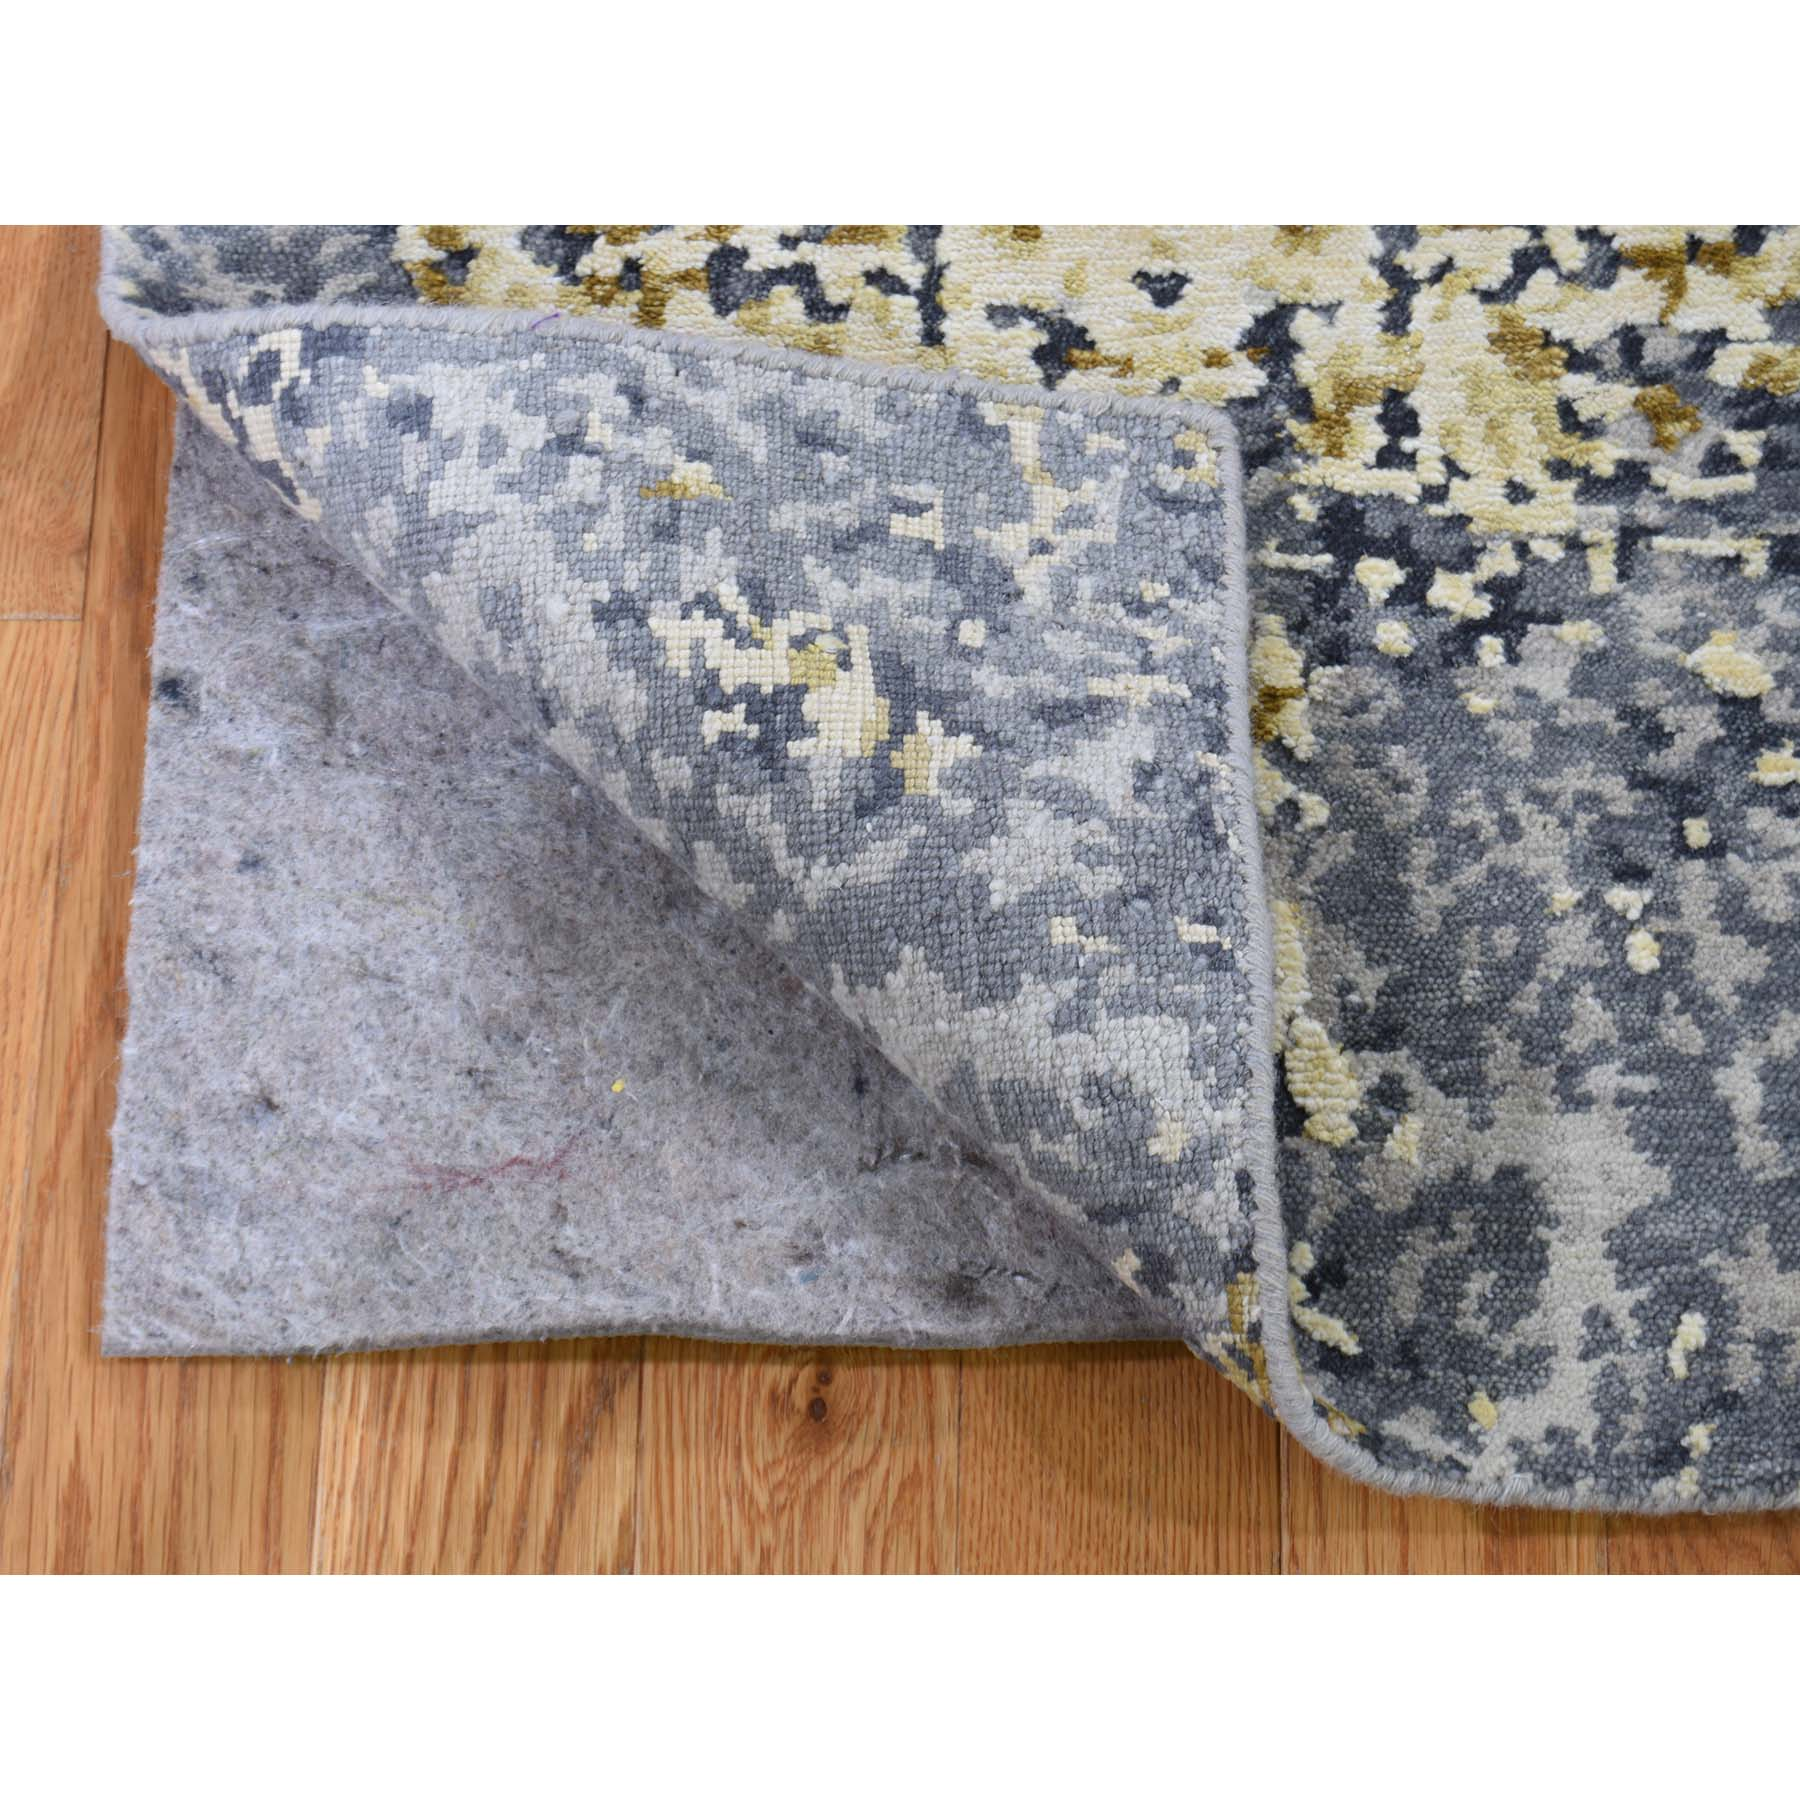 2-x3- Wool And Silk Abstract Design Hand-Knotted Modern Oriental Rug